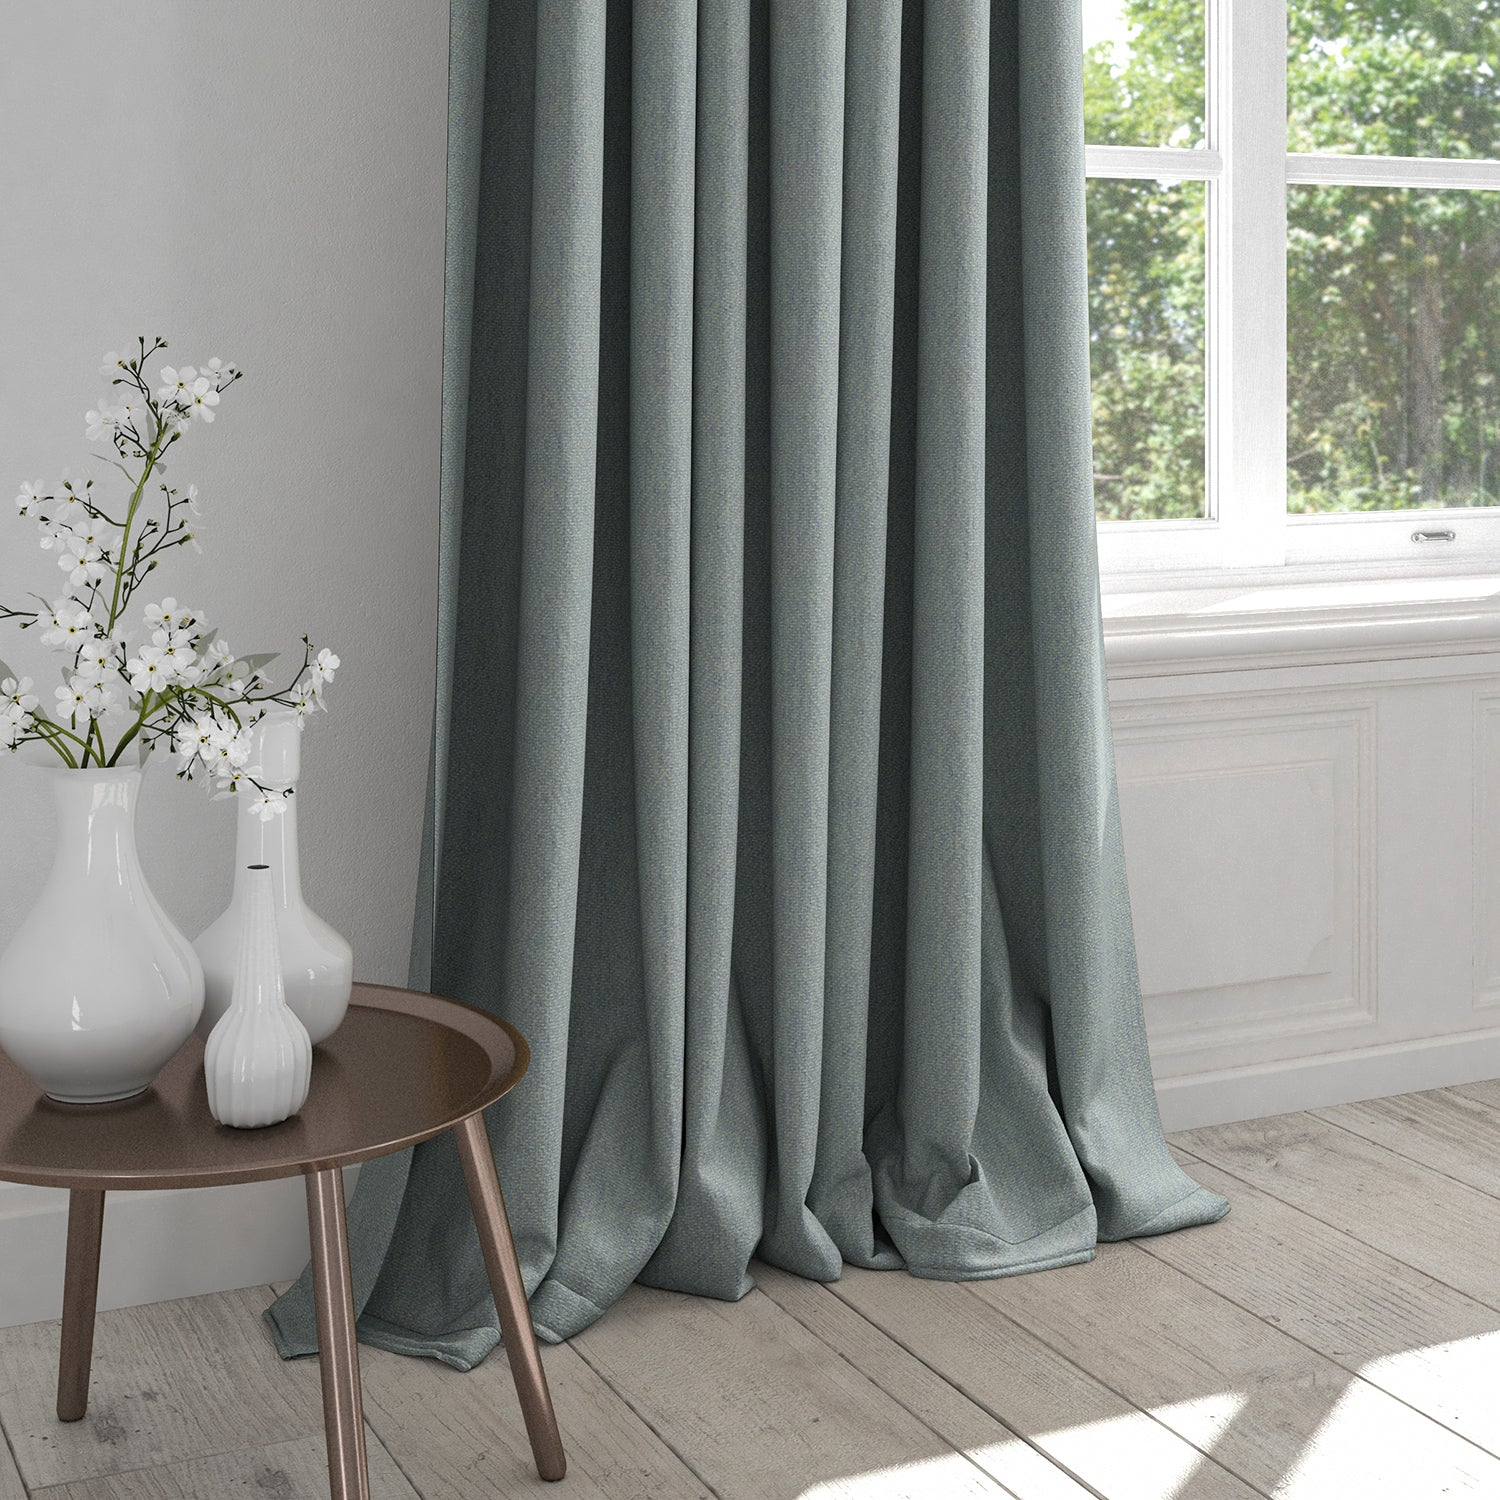 Curtains in a light blue fabric with a light neutral woven geometric design